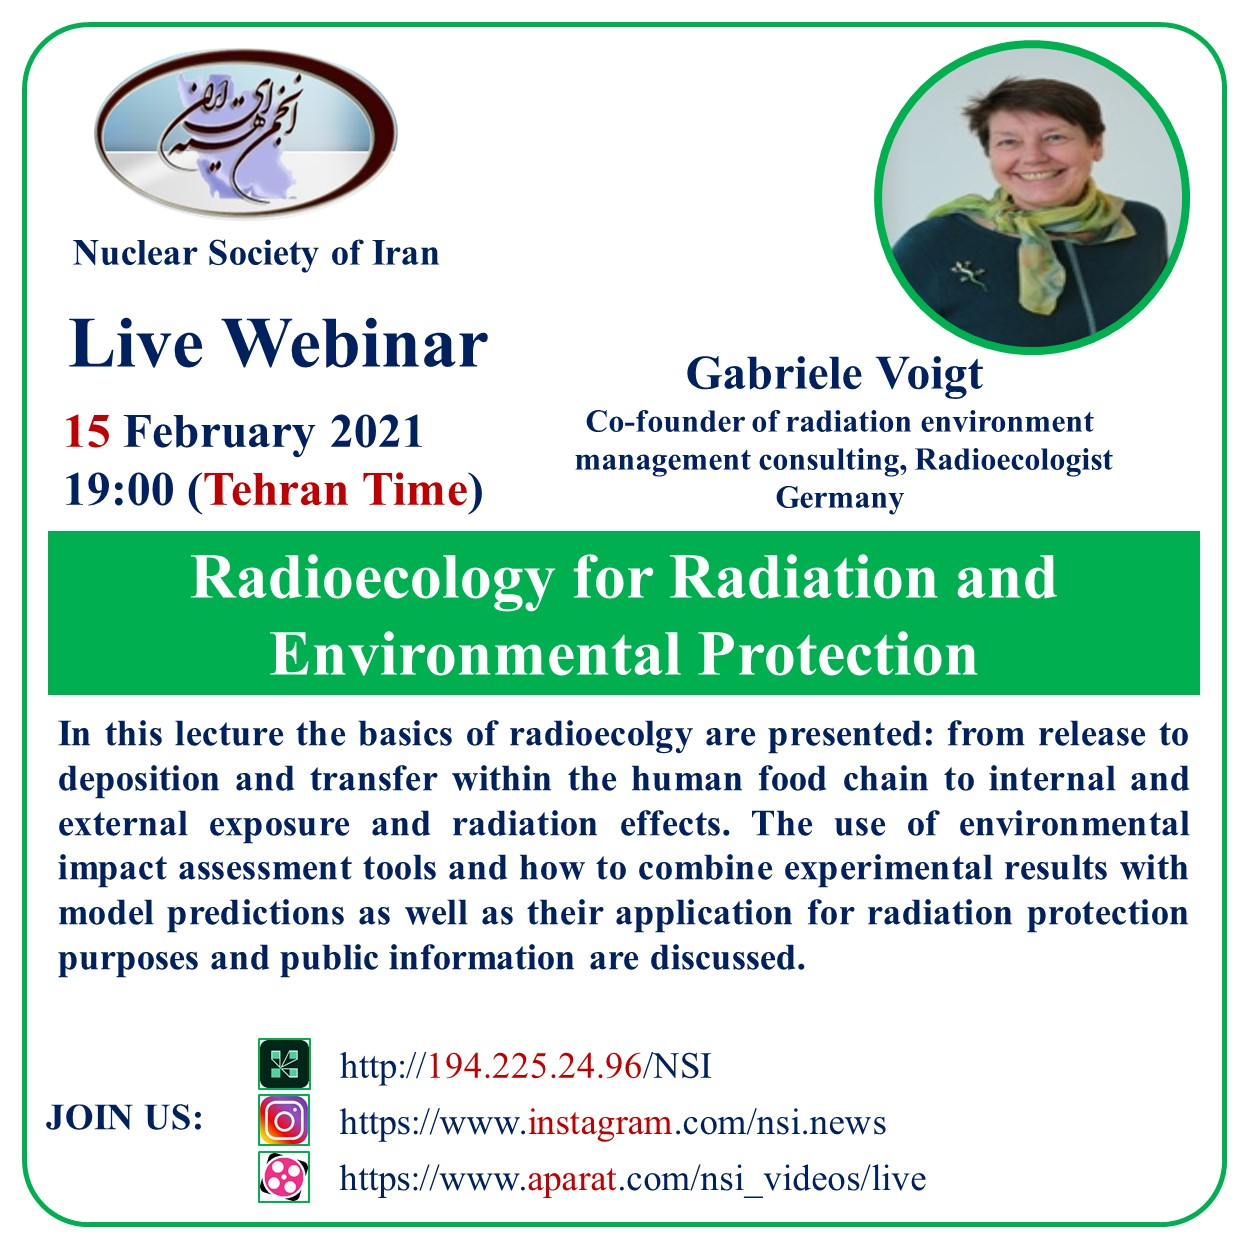 Live webinar(Radioecology for Radation and Environmental Protection)